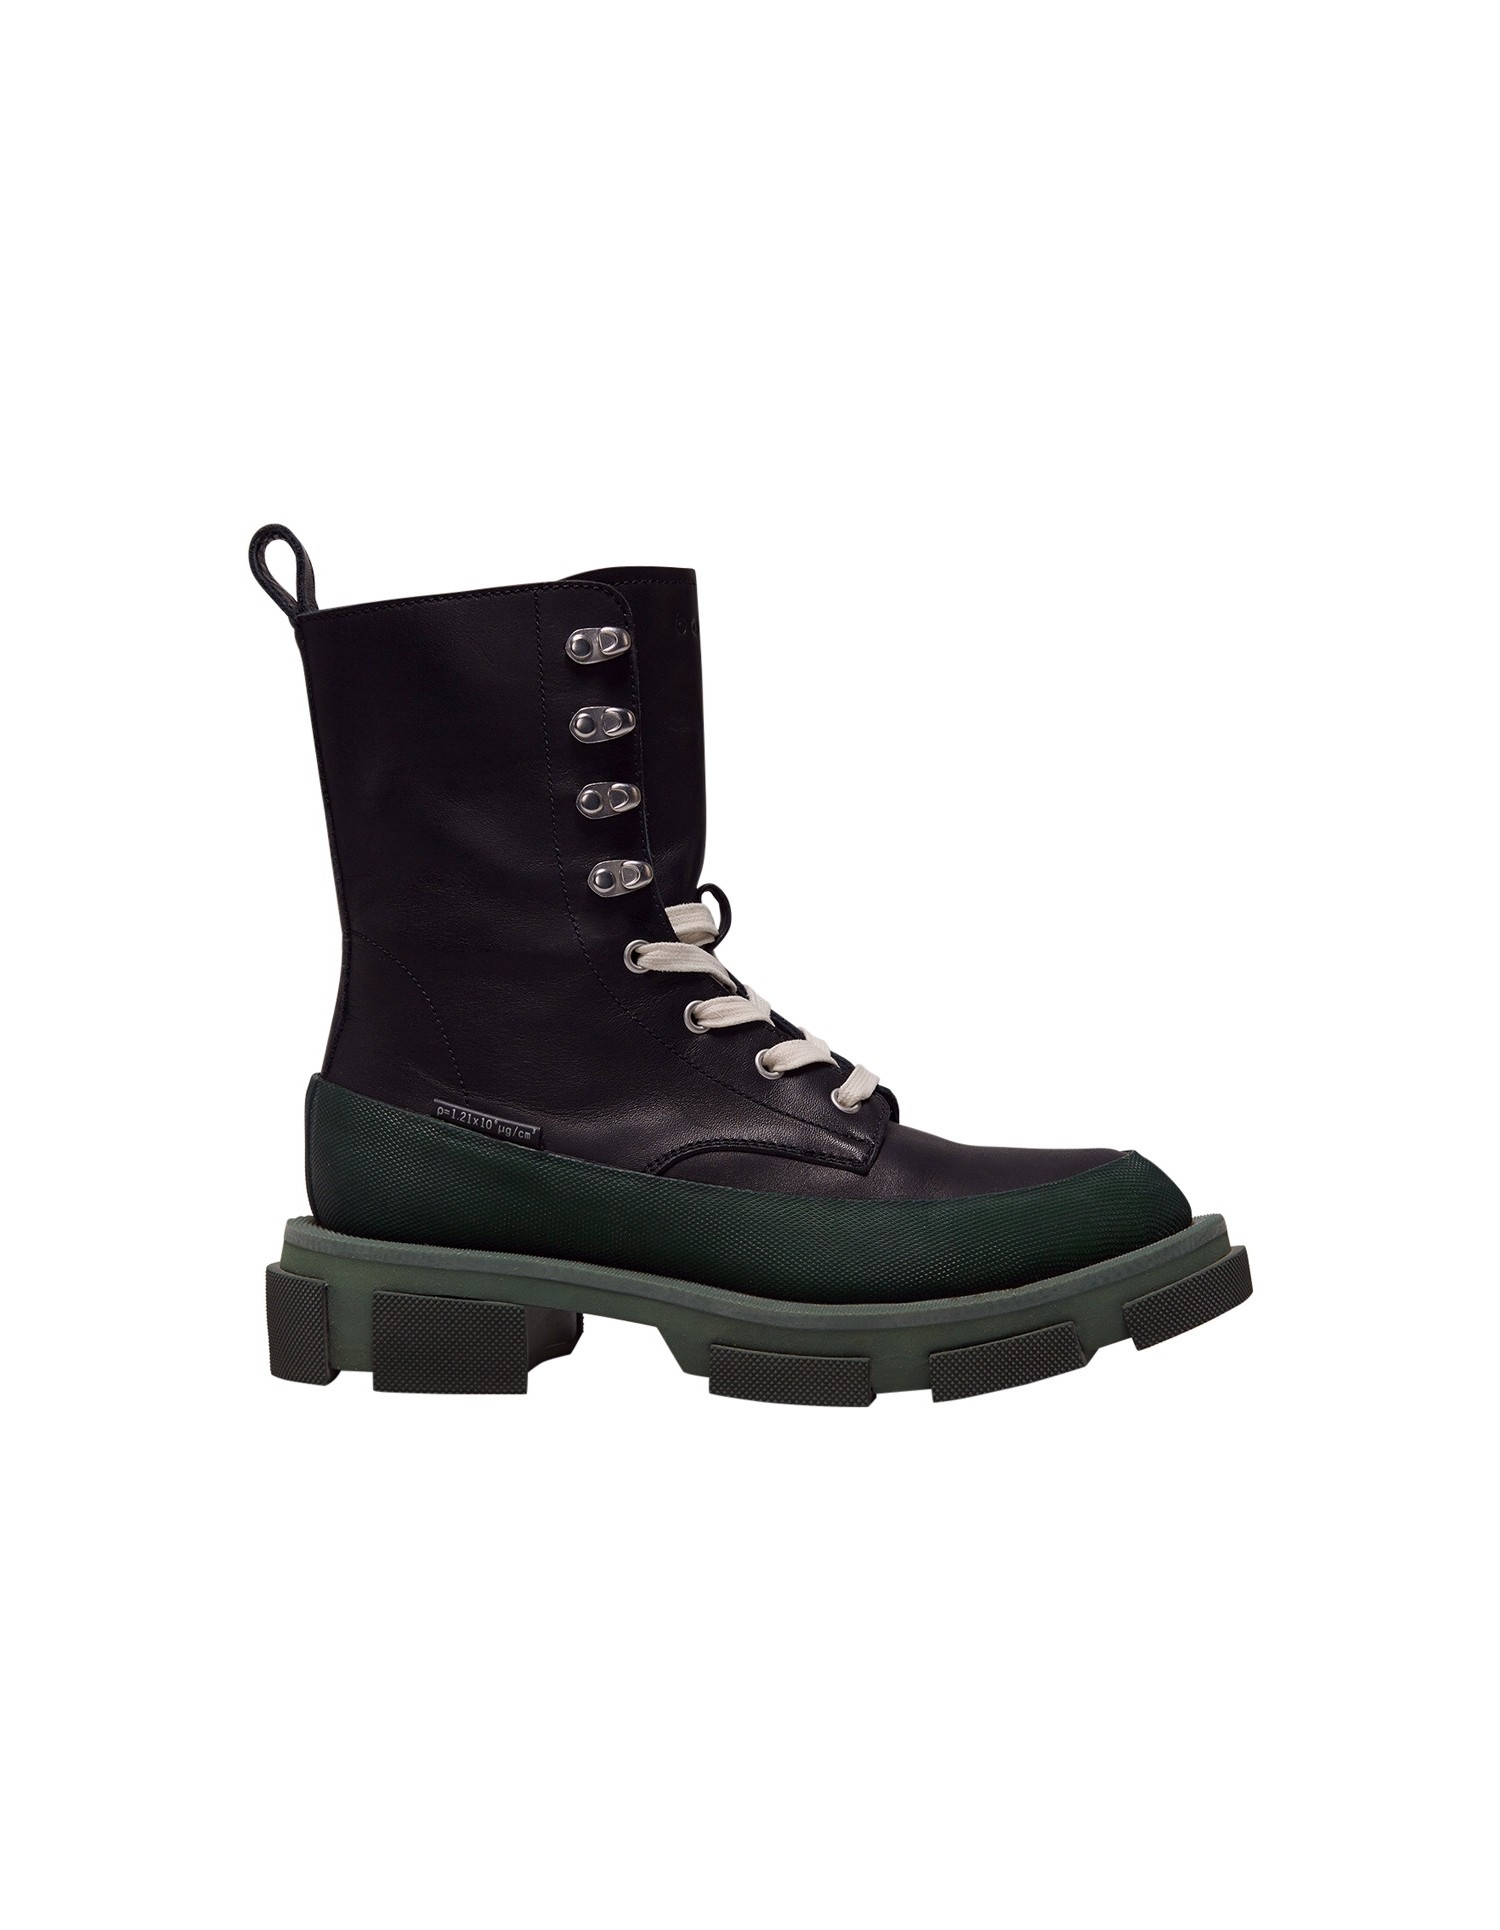 Both x MONSE Gao High Boots in Black and Olive Right Side View